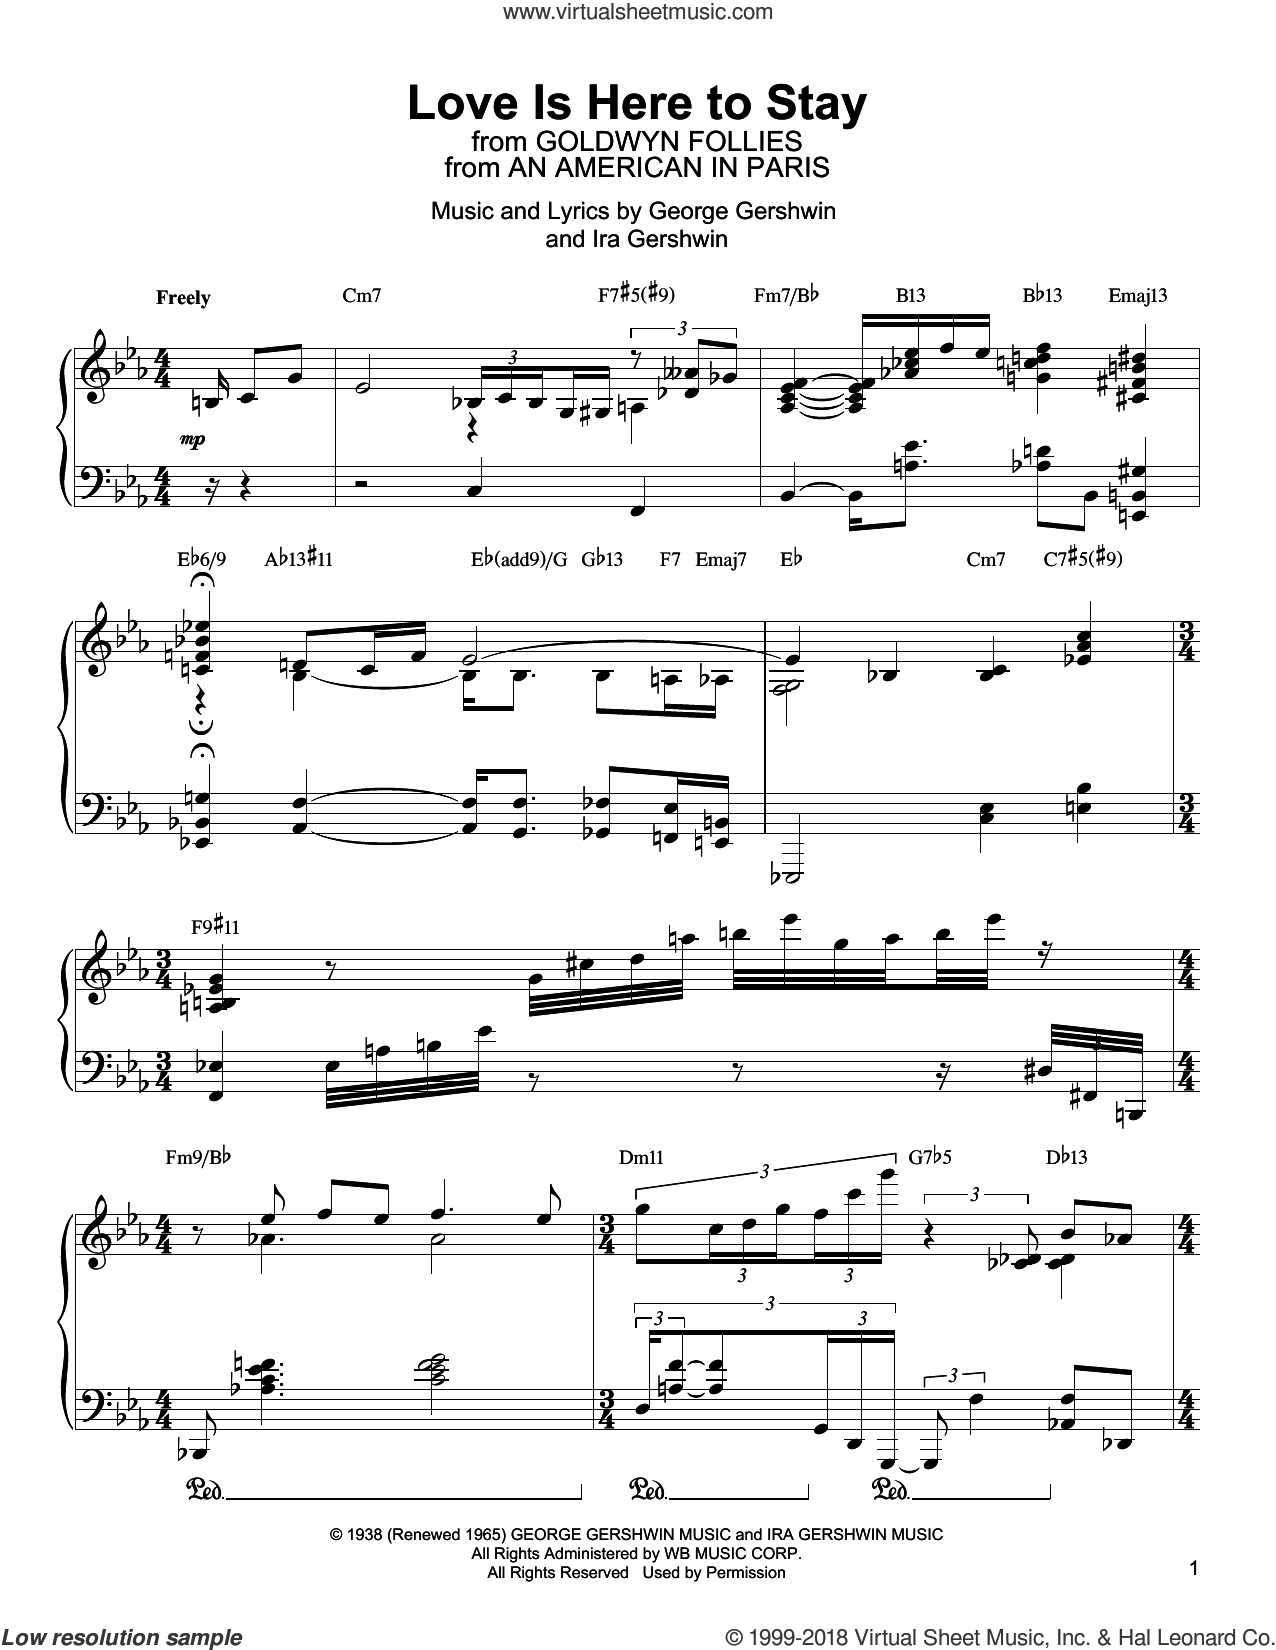 Love Is Here To Stay sheet music for piano solo (transcription) by Oscar Peterson, George Gershwin and Ira Gershwin, intermediate piano (transcription)